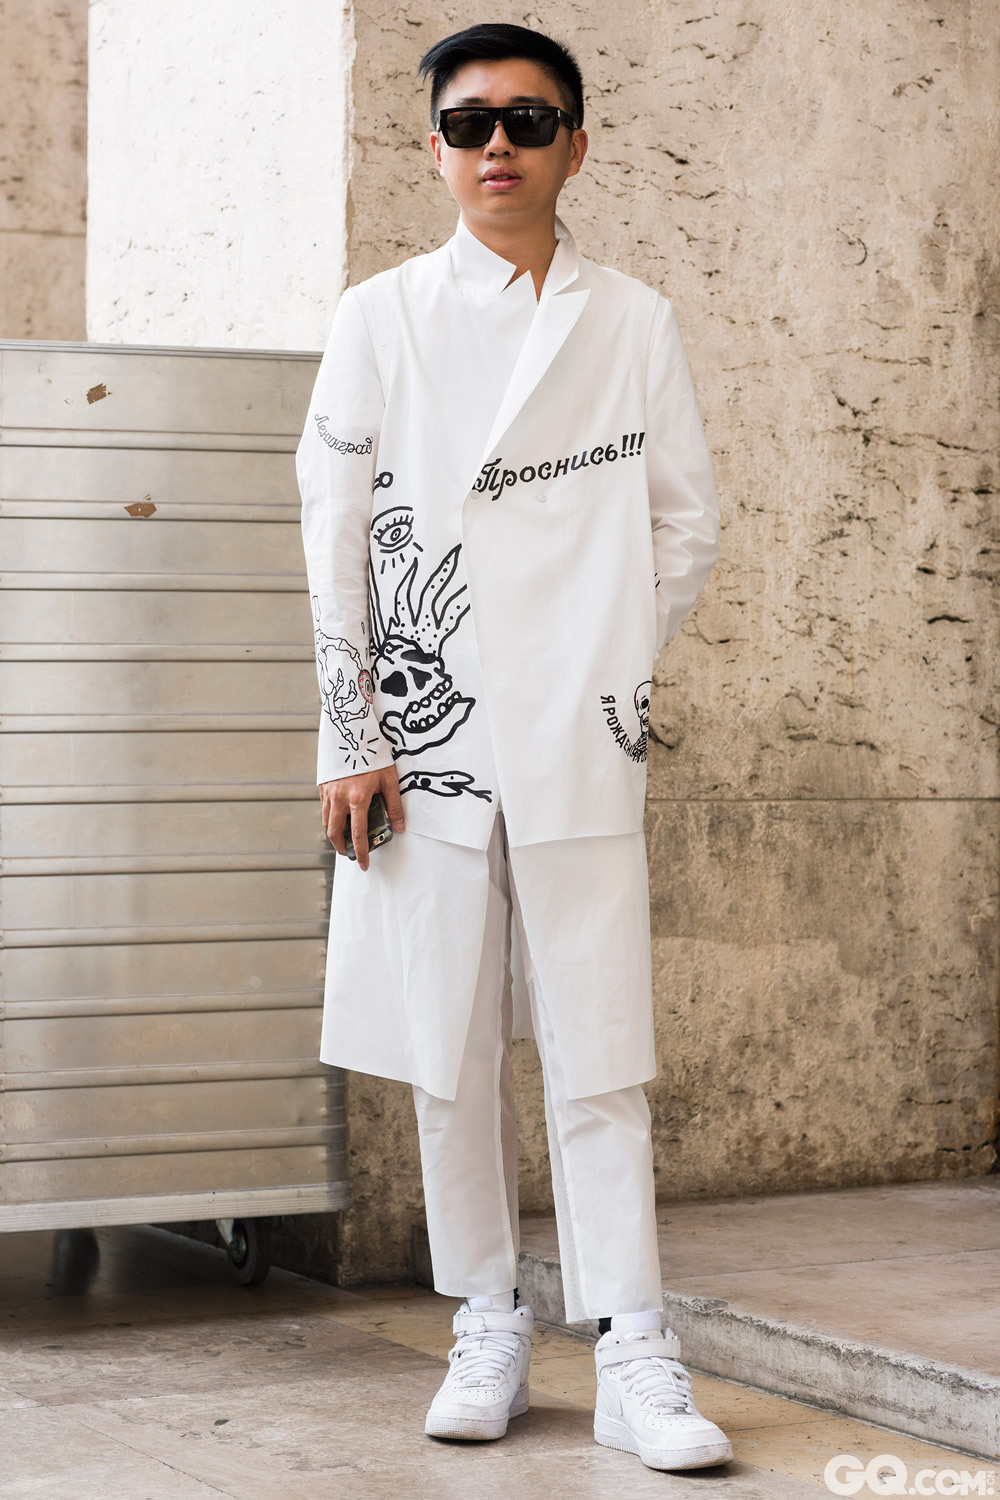 Declan Glasses: Saint Laurent  Suit: San kuanz Shoes: Nike 	 Inspiration: All white, something really fresh for a hot day (全白色才是对于夏天来说真正新鲜的)